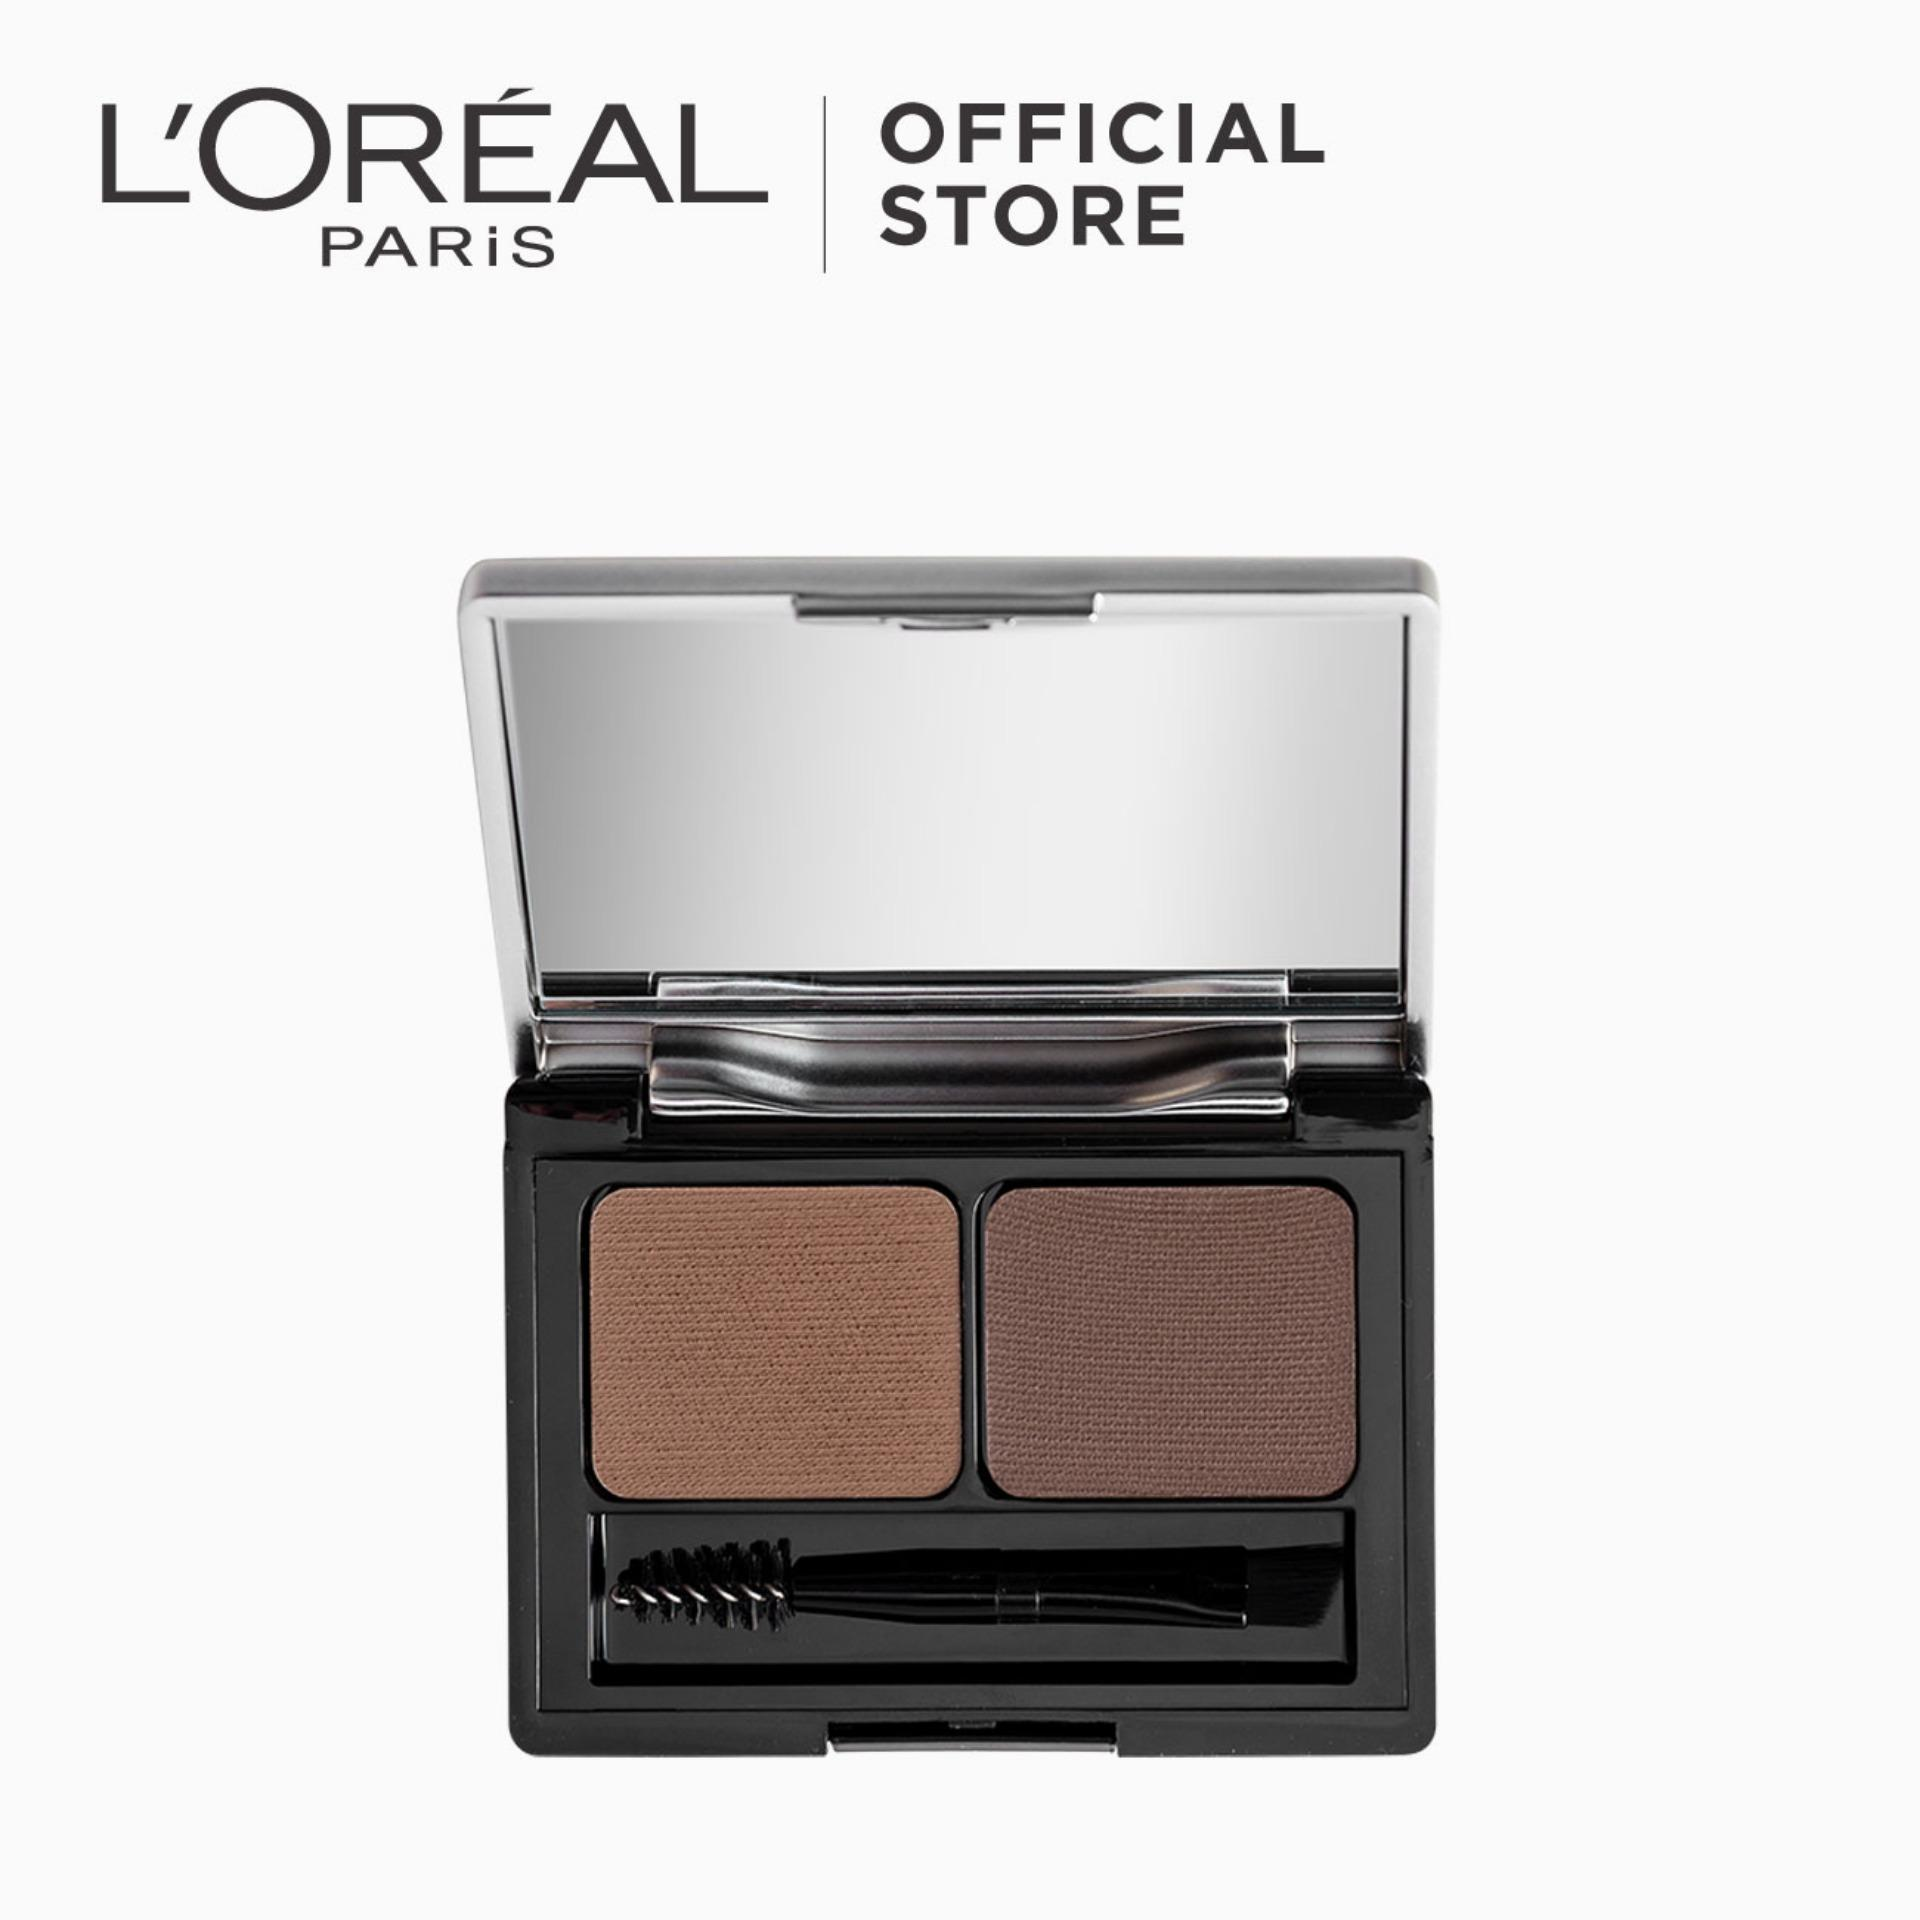 Genius Kit Shaping Eyebrow Palette - Dark Brown 02 by LOréal Paris Brow Artist Philippines